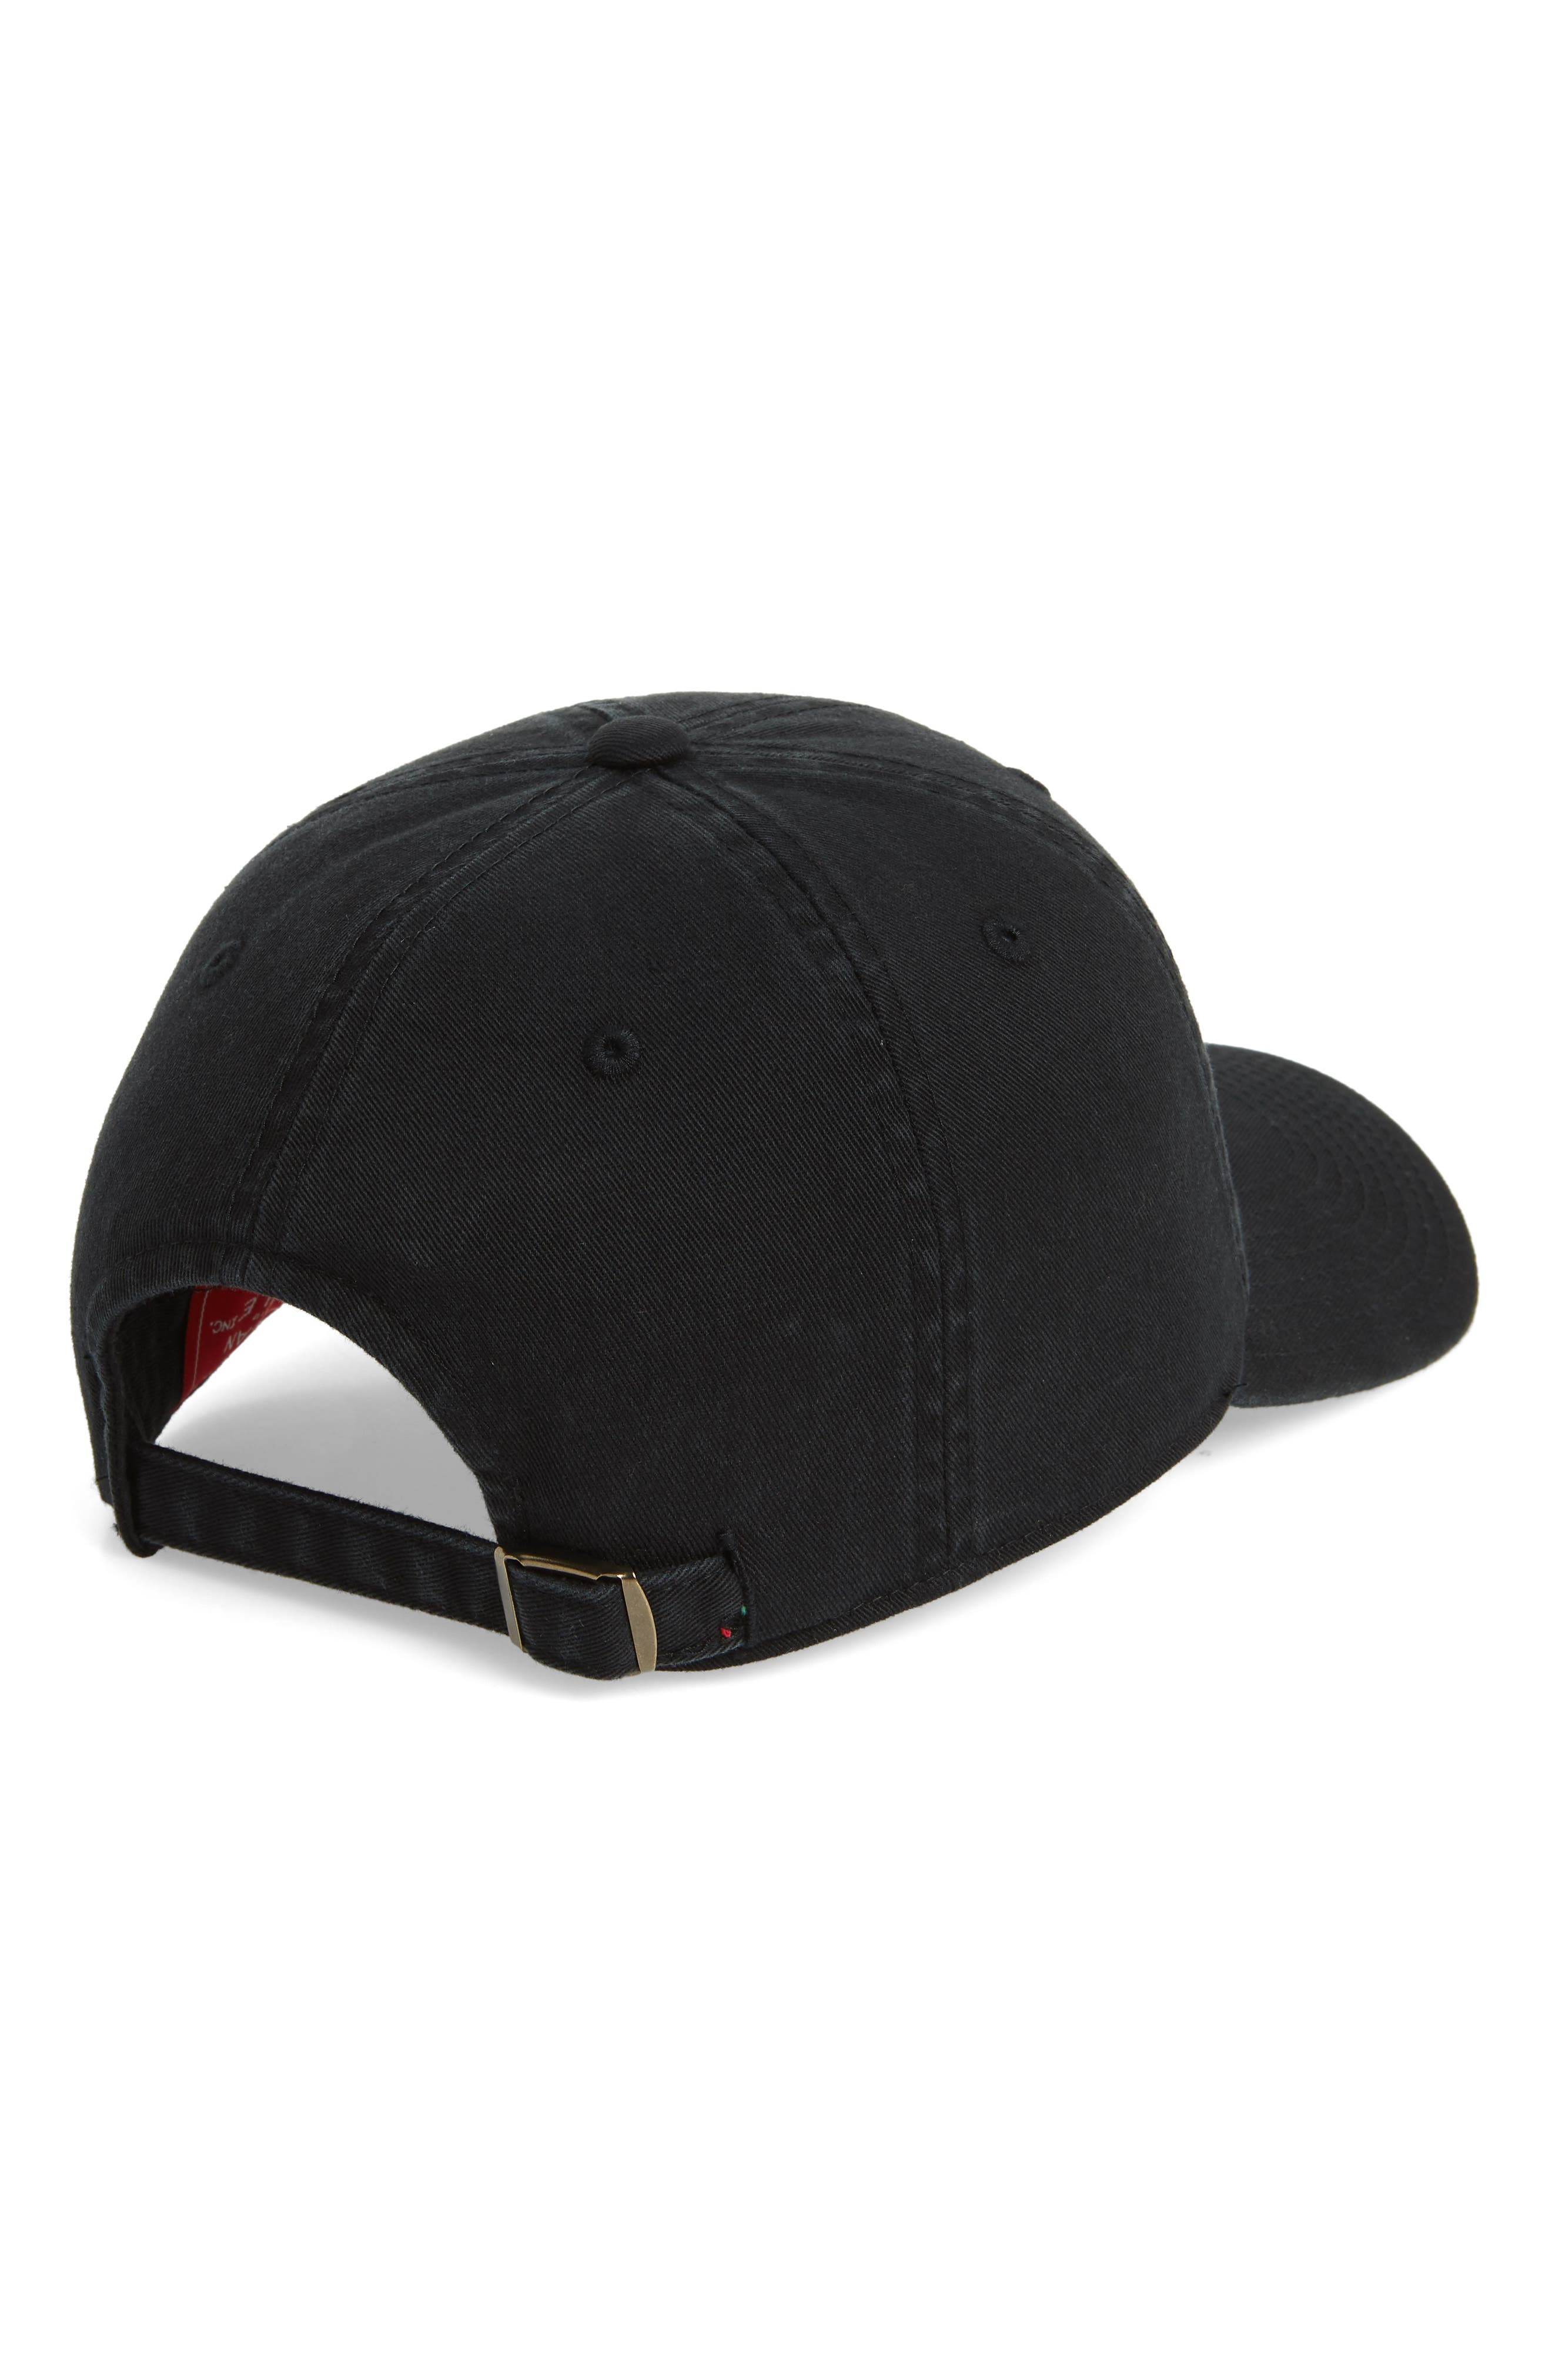 United Slouch Los Angeles Ball Cap,                             Alternate thumbnail 3, color,                             Ivory/ Black